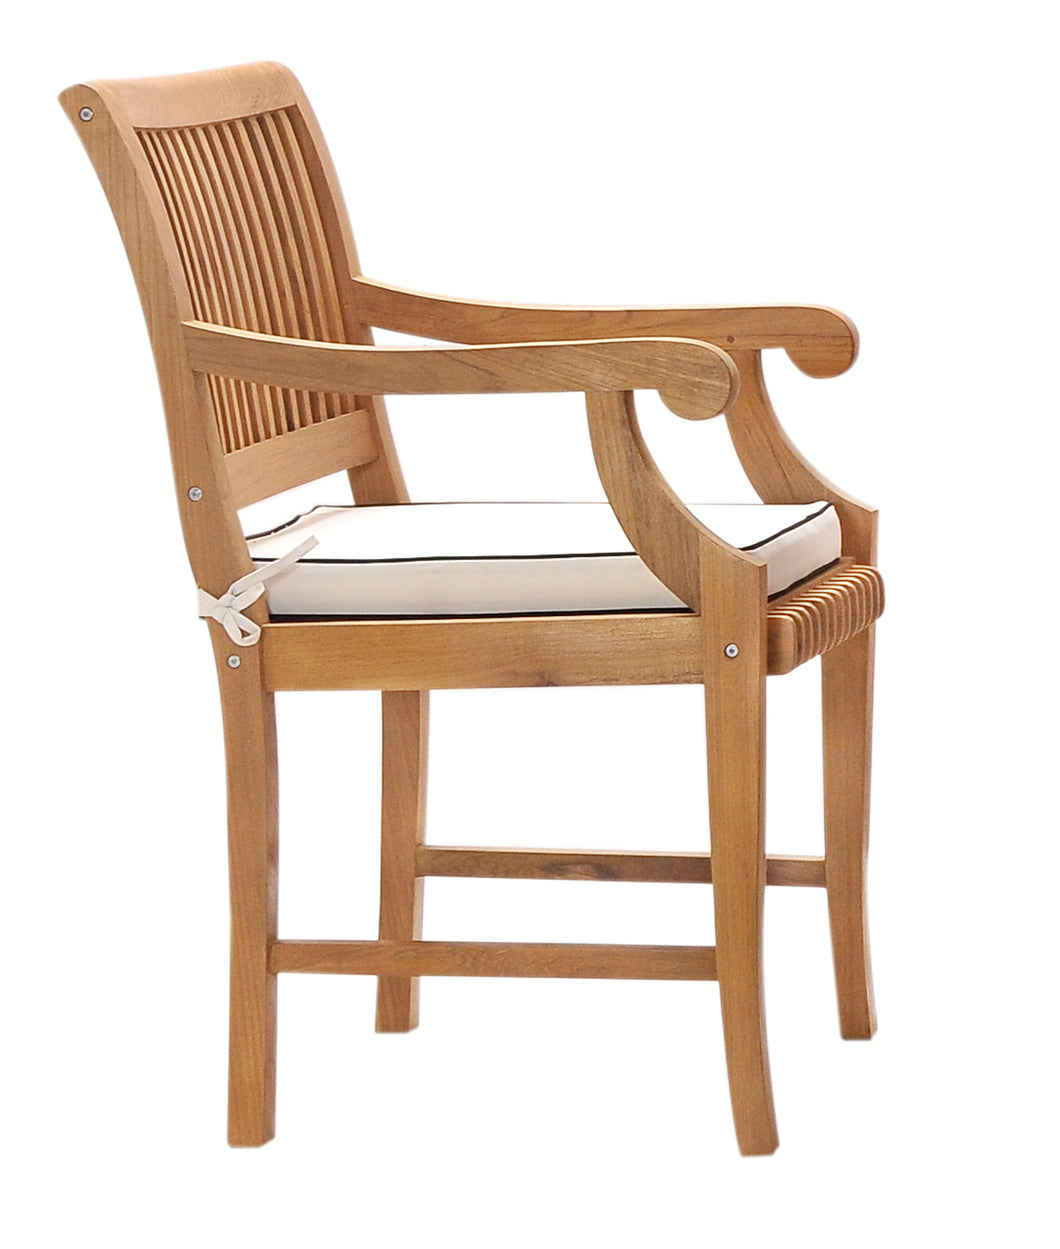 Cushion for Teak Castle Chairs, Barstools and Counter Stools - La Place USA Furniture Outlet